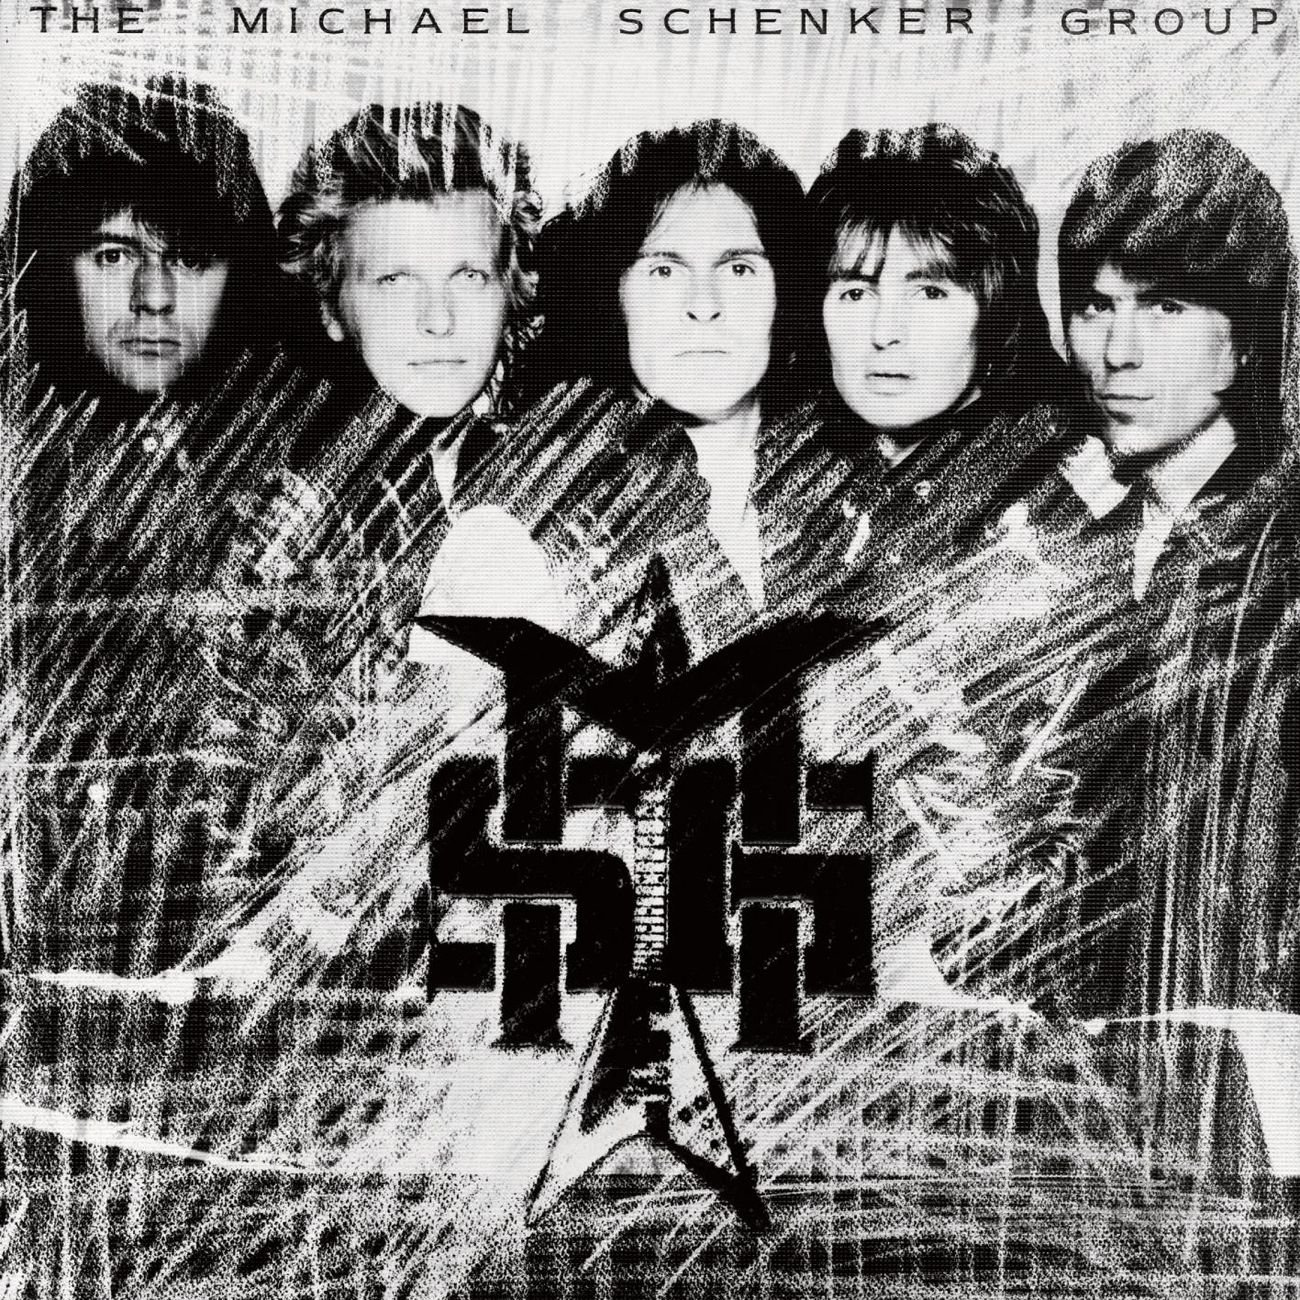 Amazon.co.jp: Michael Schenker...